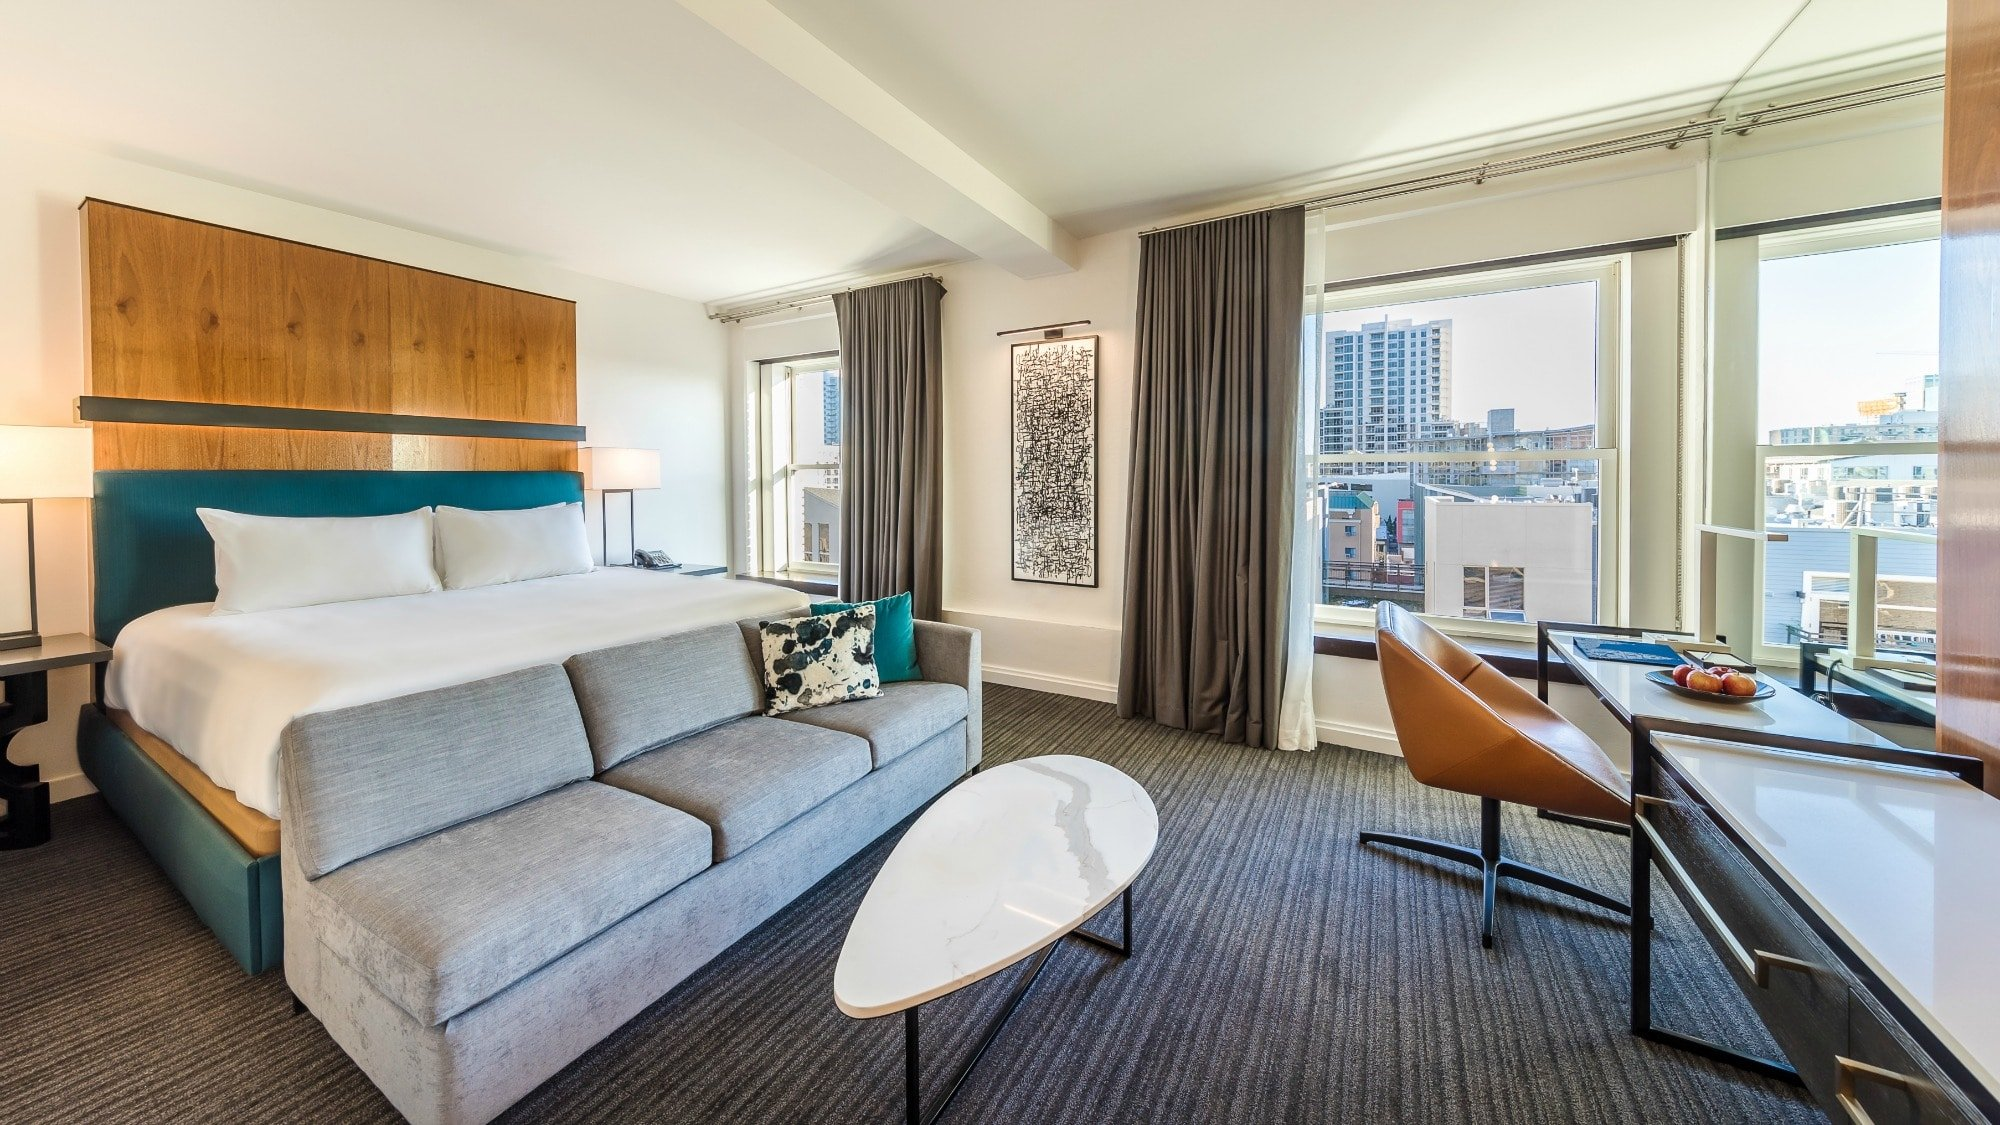 A king room with coastal grey colors, view of downtown and a pop of turquoise around the bed at Andaz San Diego.